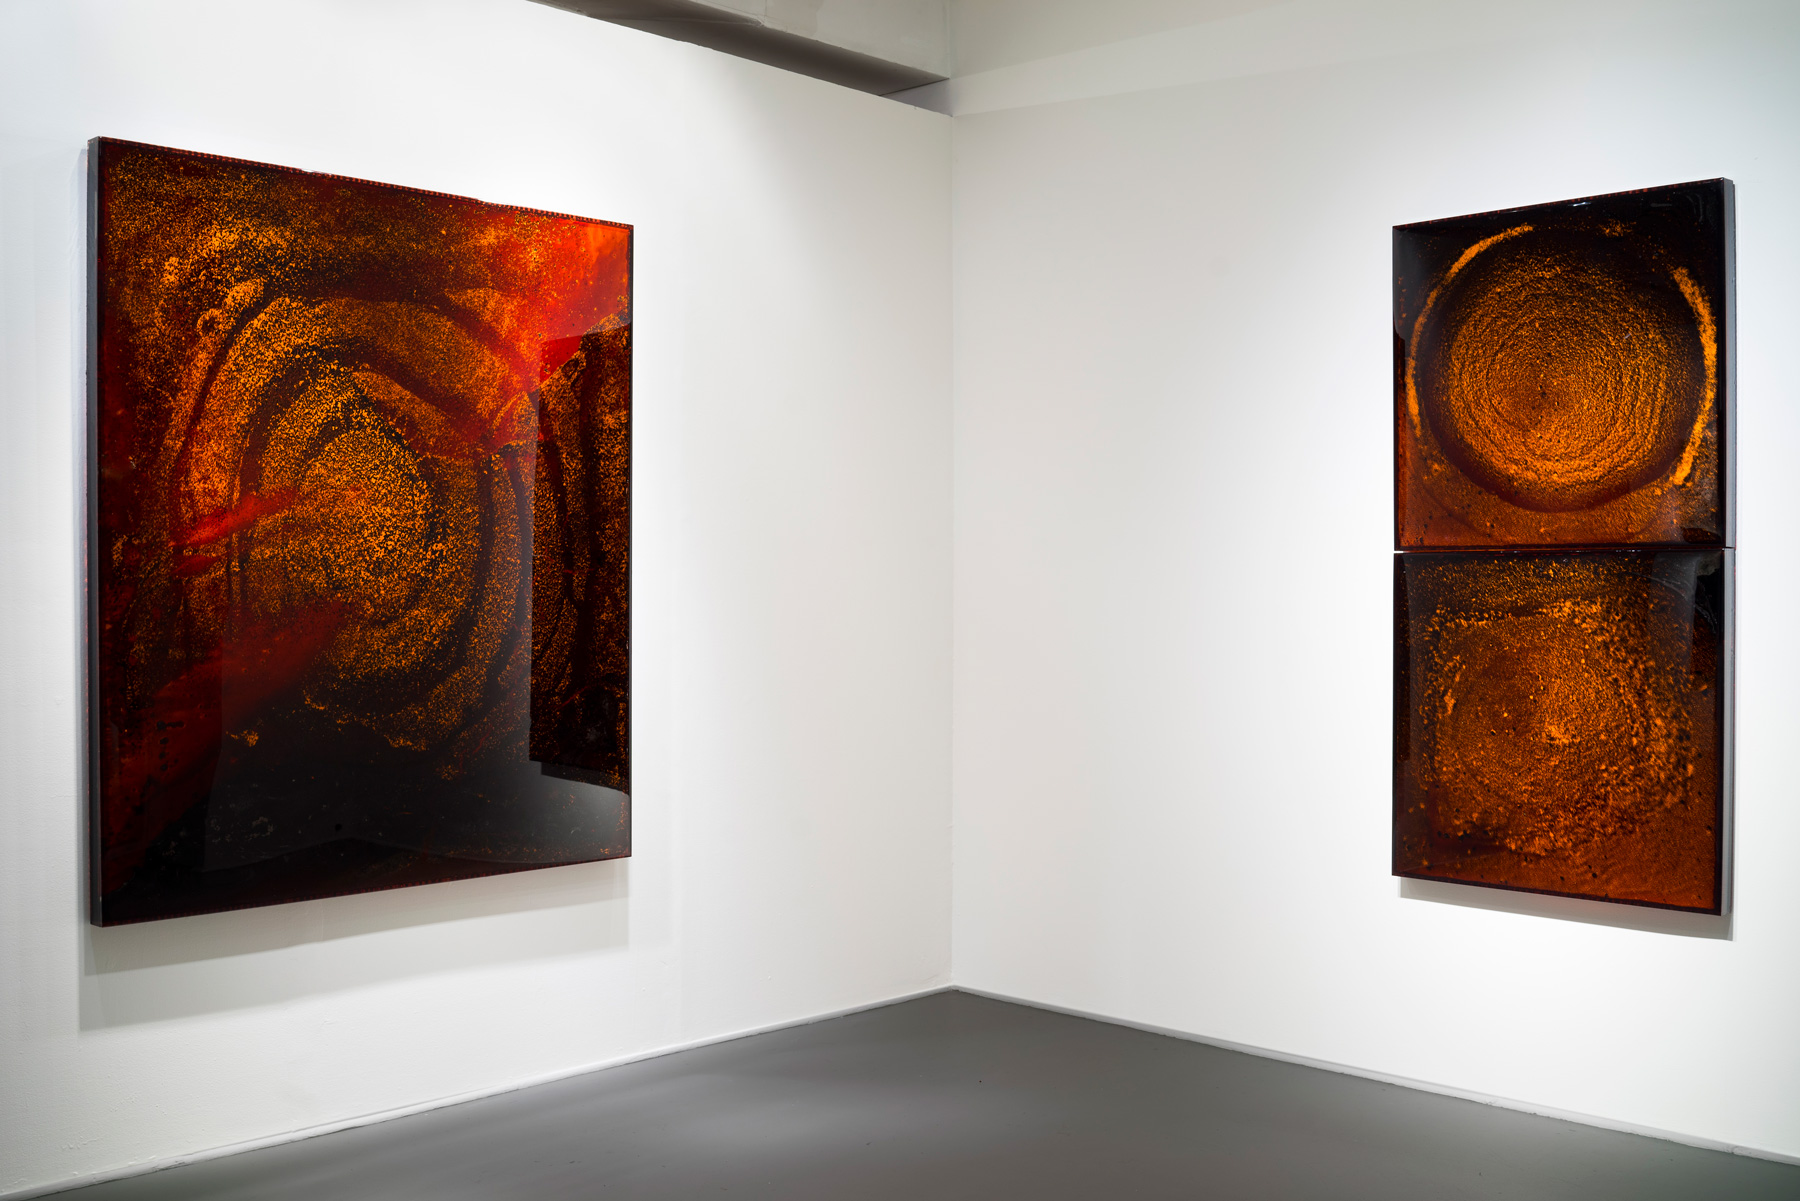 """RED GIANT 5 ,  2011   (left)  72 x 60 x 3""""  sun-dried blood preserved on plexiglass, UV resin, copper backing    RED GIANT 7-8 ,  2012   (right)  36 x 72 x 3""""  sun-dried blood preserved on plexiglass, UV resin, copper backing"""